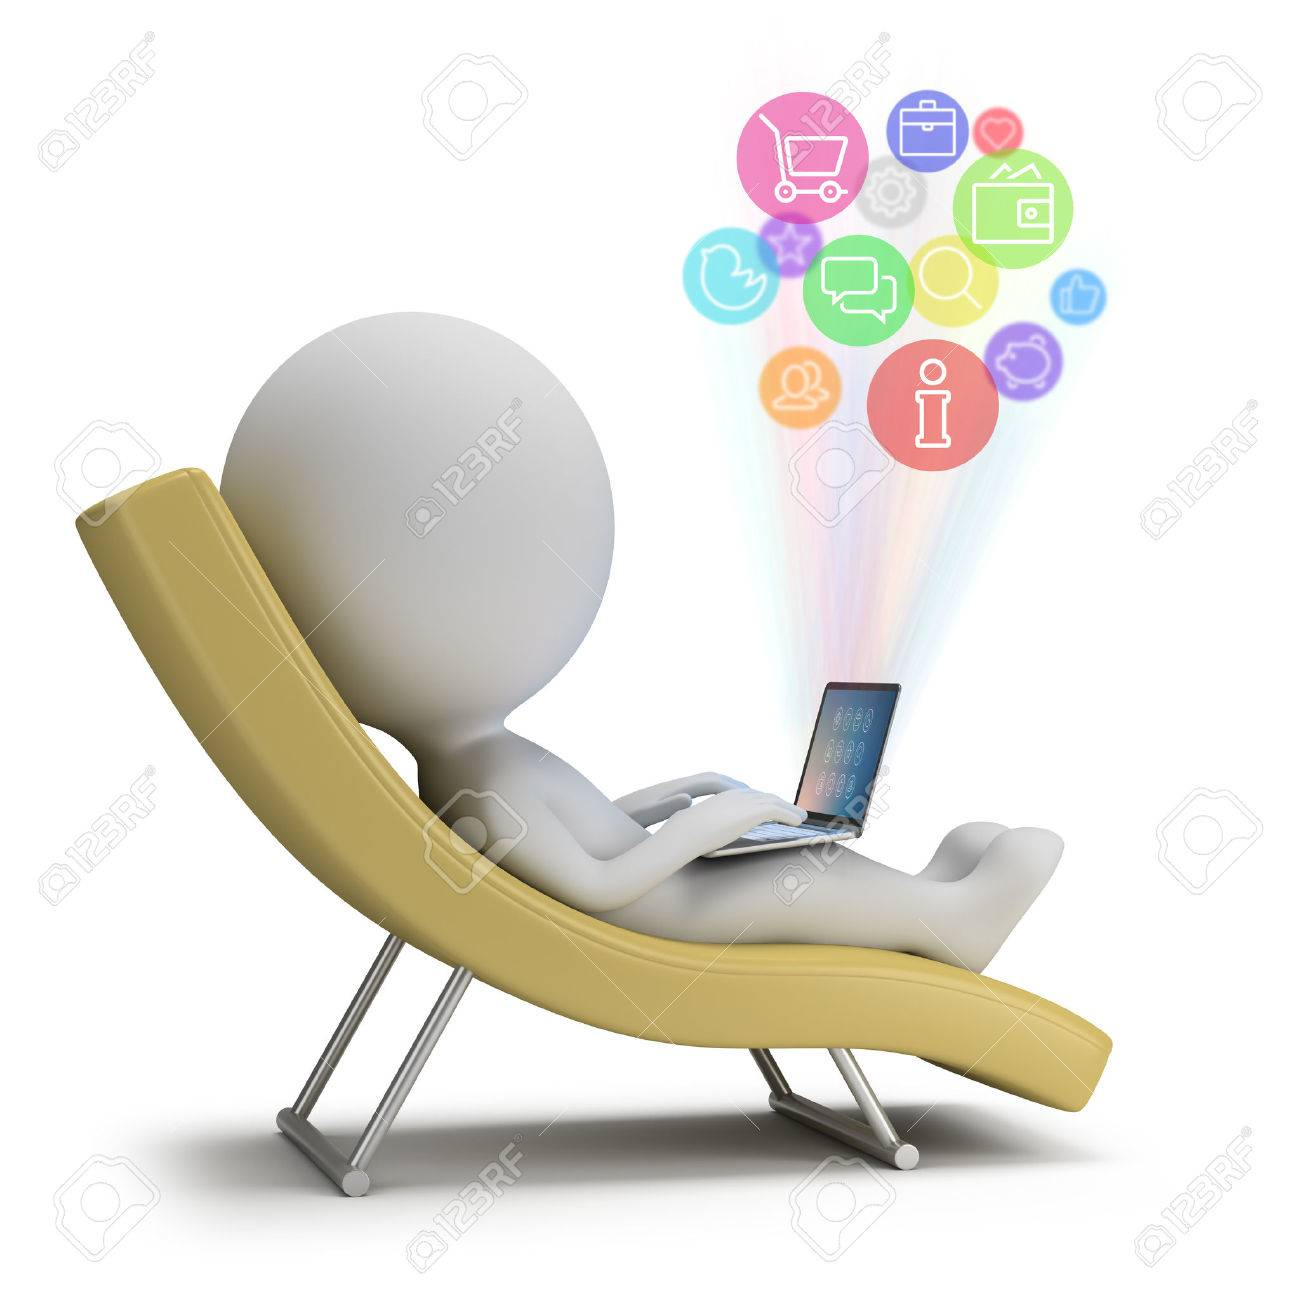 3d small person lies with a laptop on a chaise lounge. Internet services. 3d image. White background. - 32009857